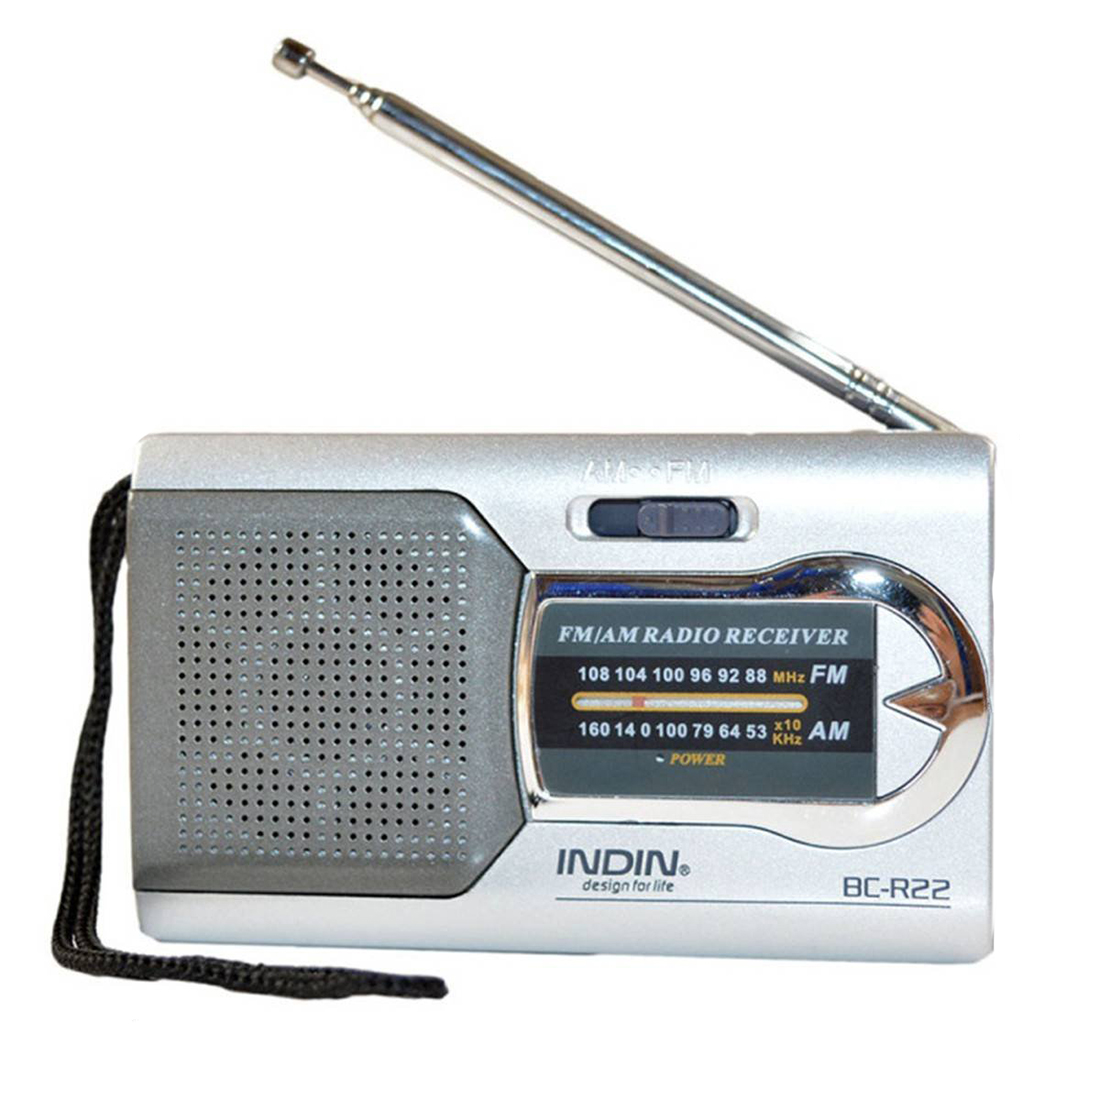 Audio Intercom Türsprechstelle D5 Mini Walkie Talkies Zwei-weg Radio Lange Palette 400-480 Mhz 22 Kanal